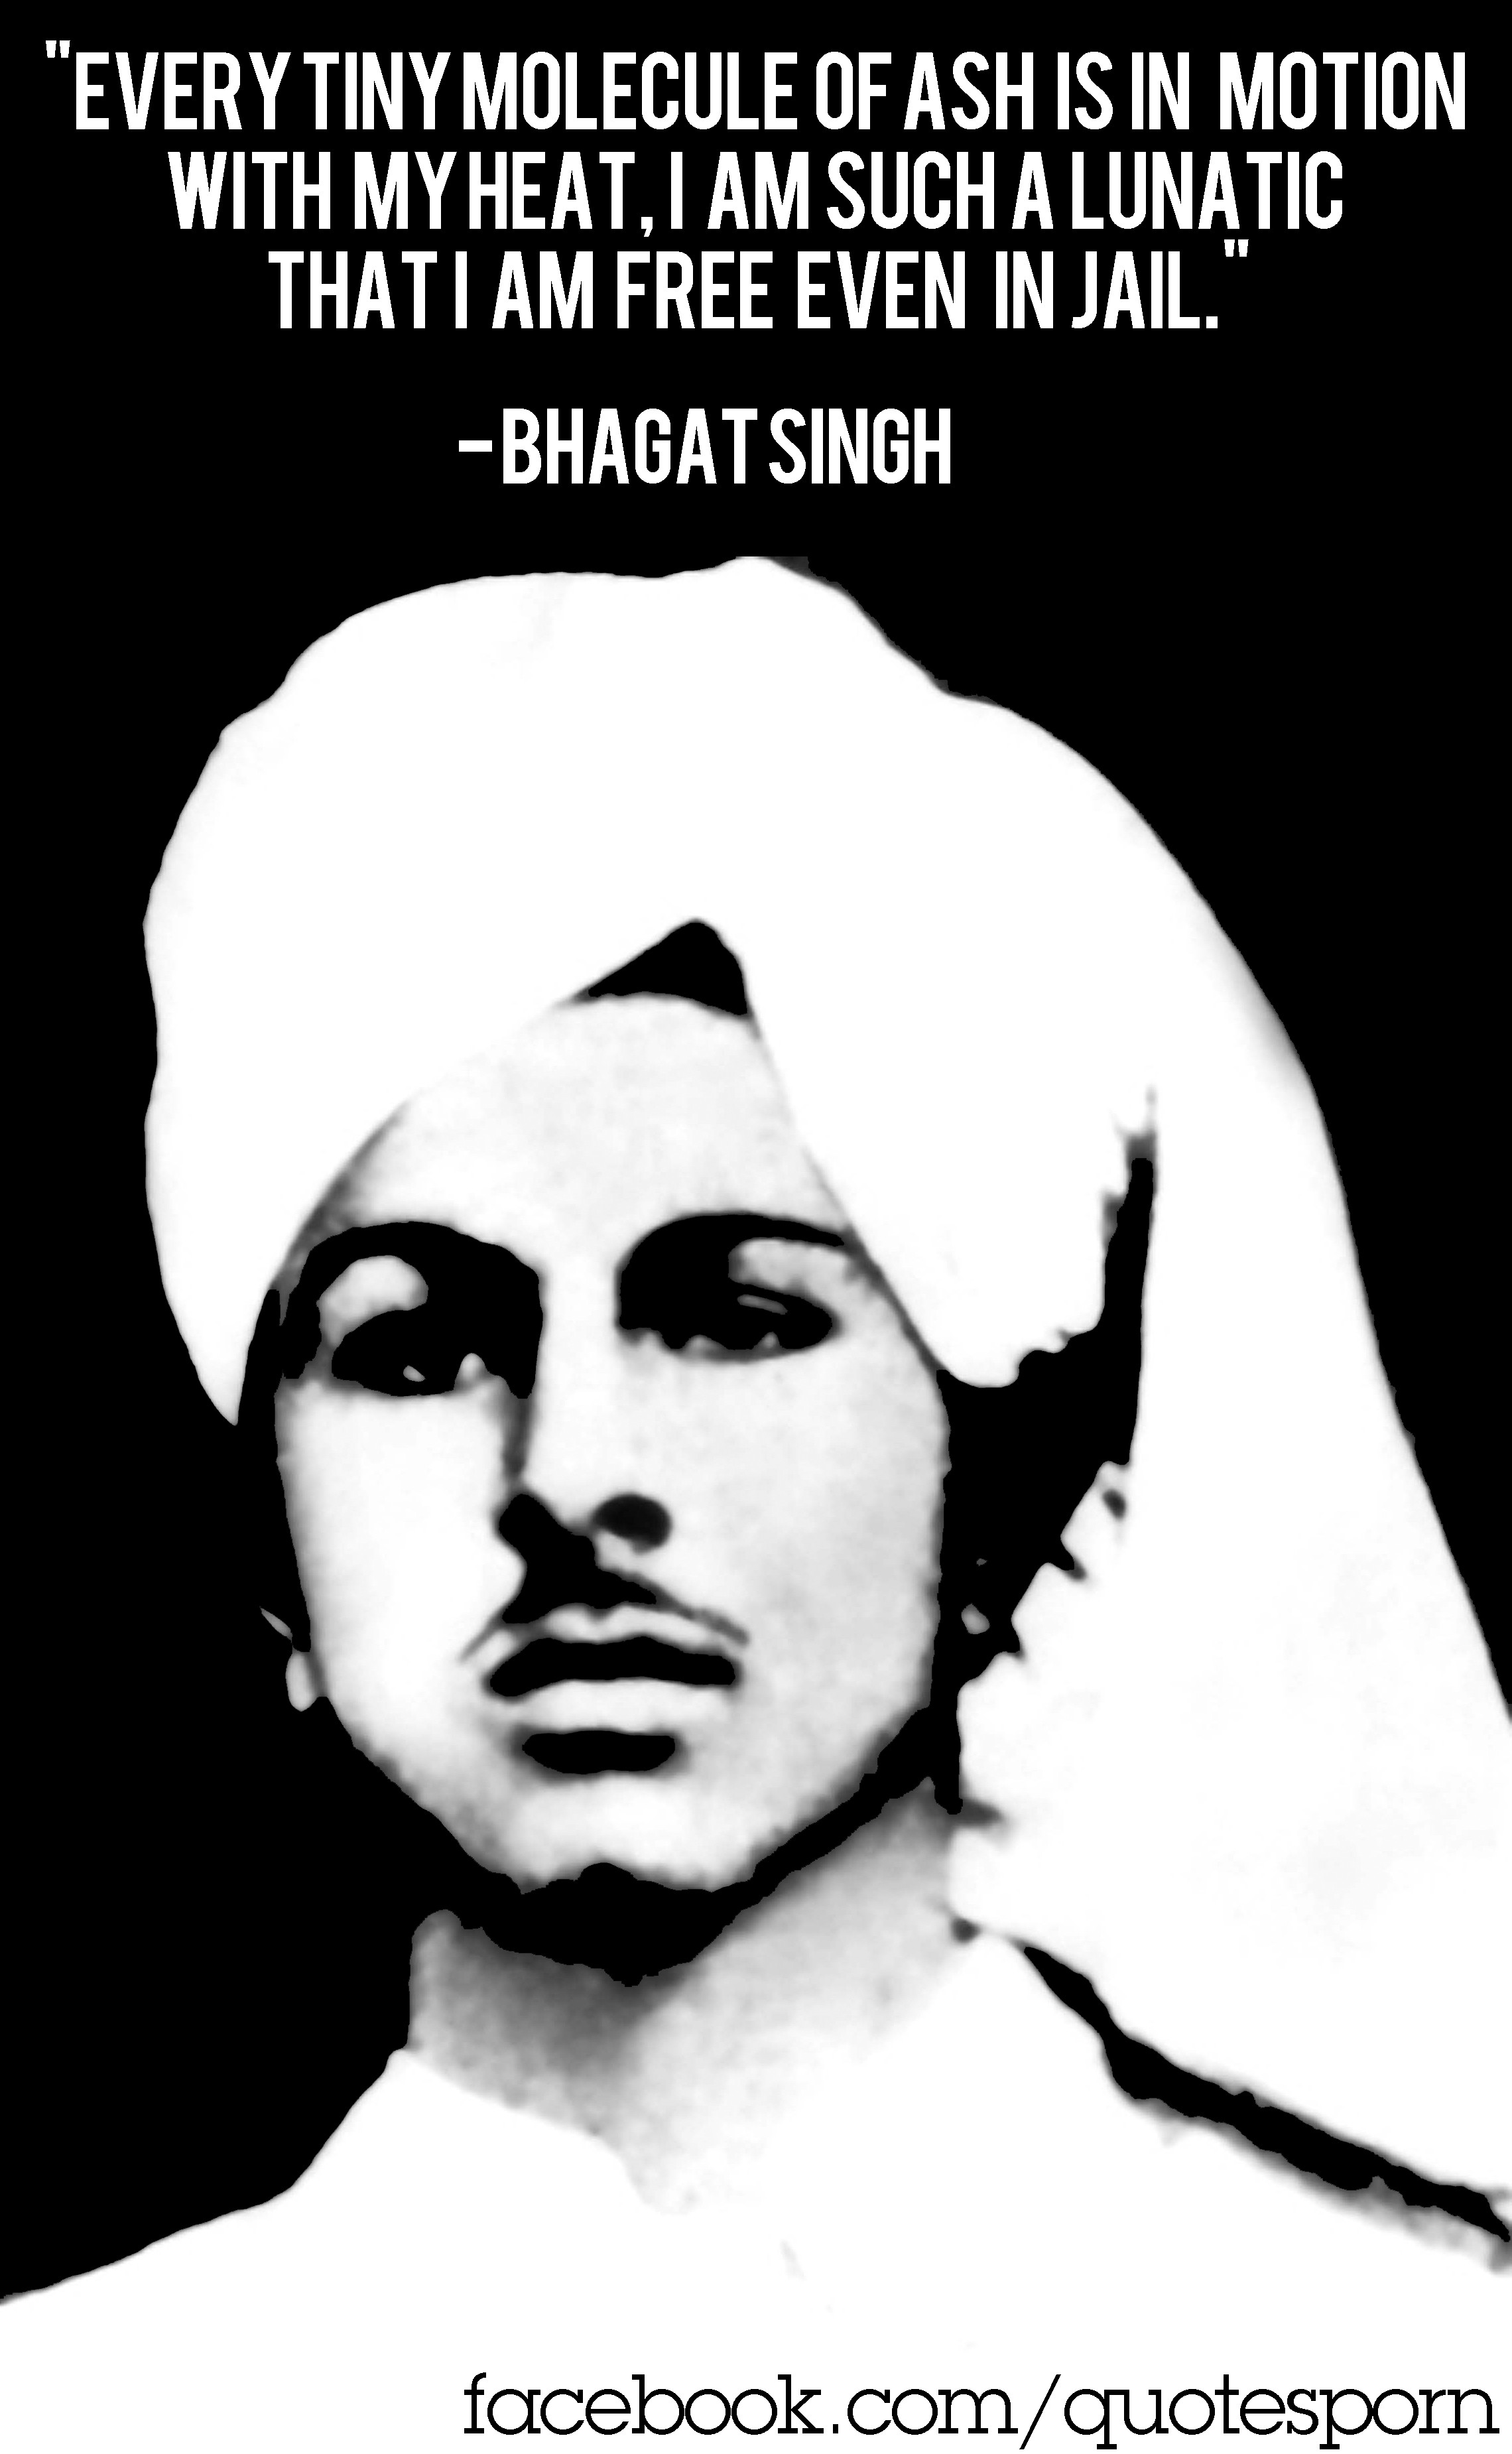 Bhagat-SinghHanged-A-Sikh-revolutionary-who-played-important-role-in-organizing-militant-acti-wallpaper-wp5005244